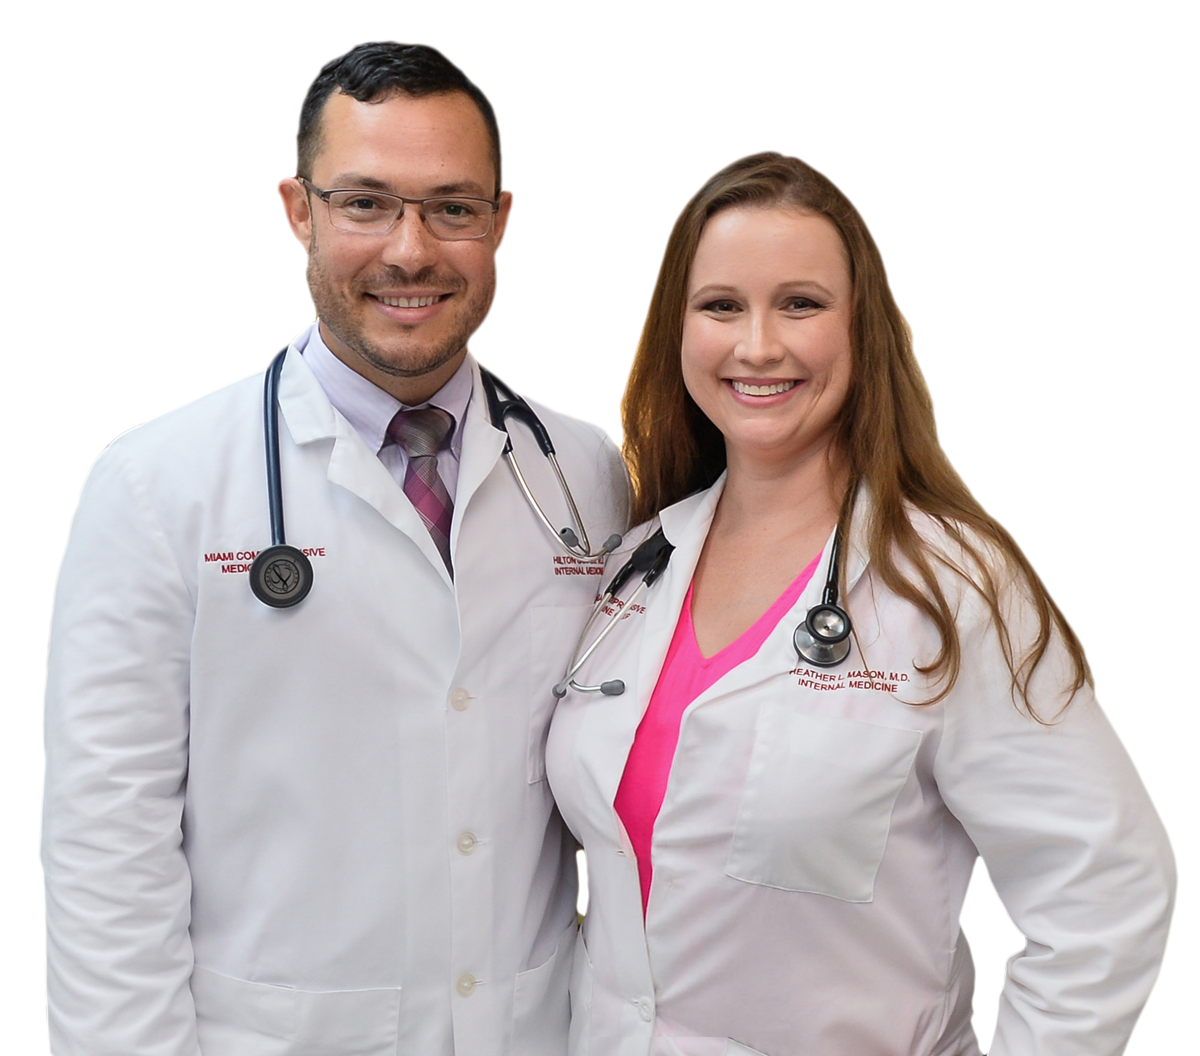 About us - Dr  Hilton Gomes and Dr  Heather Mason